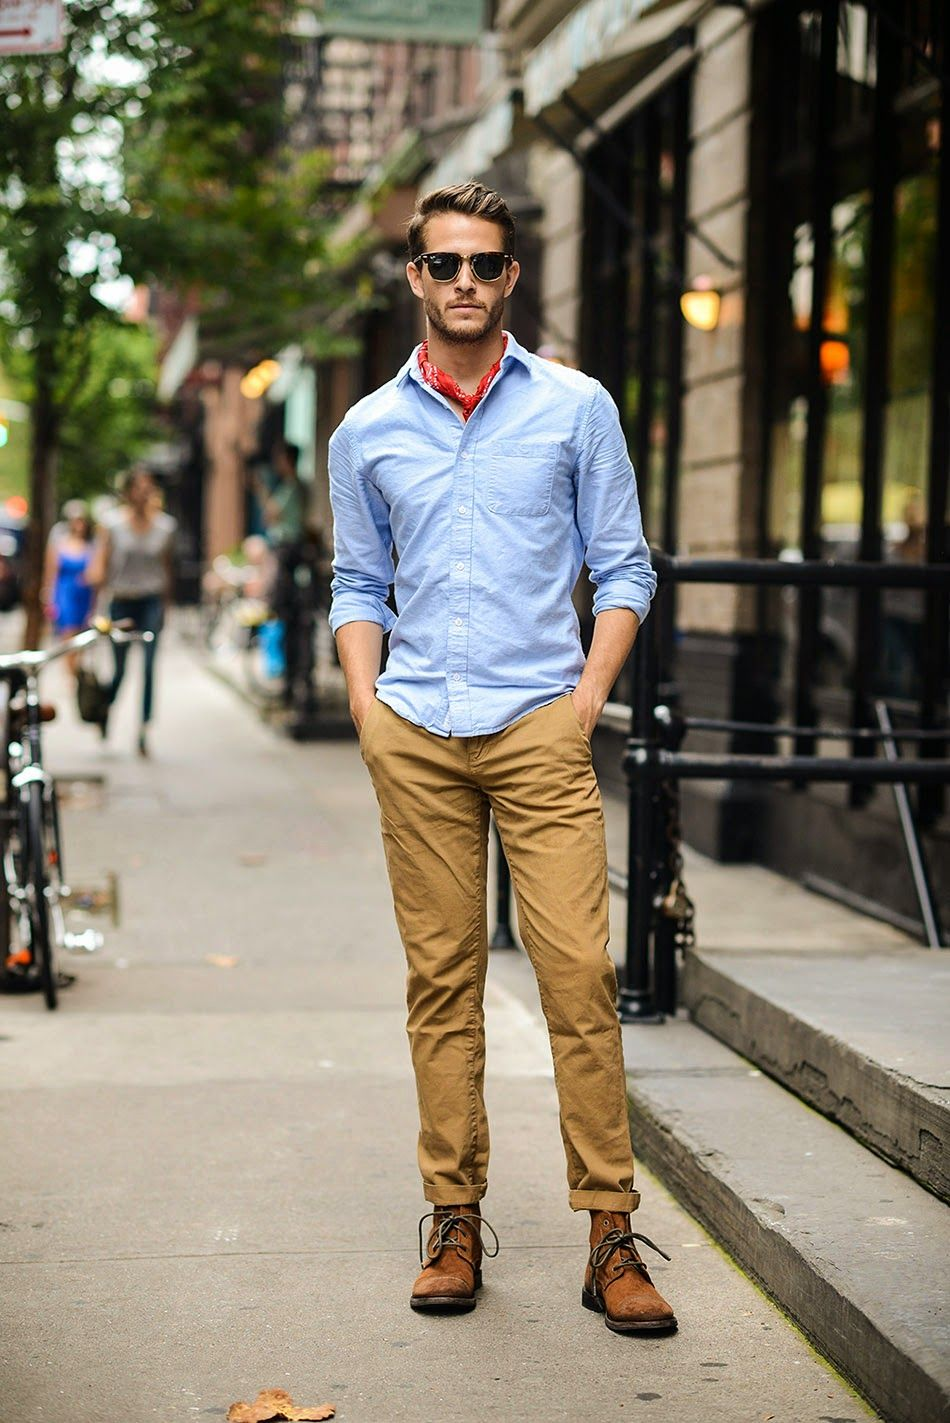 with tan chinos brown chukka boots blue oxford shirt with rolled up sleeves  J Crew sunglasses red bandana in this transition look 212d1acbb6